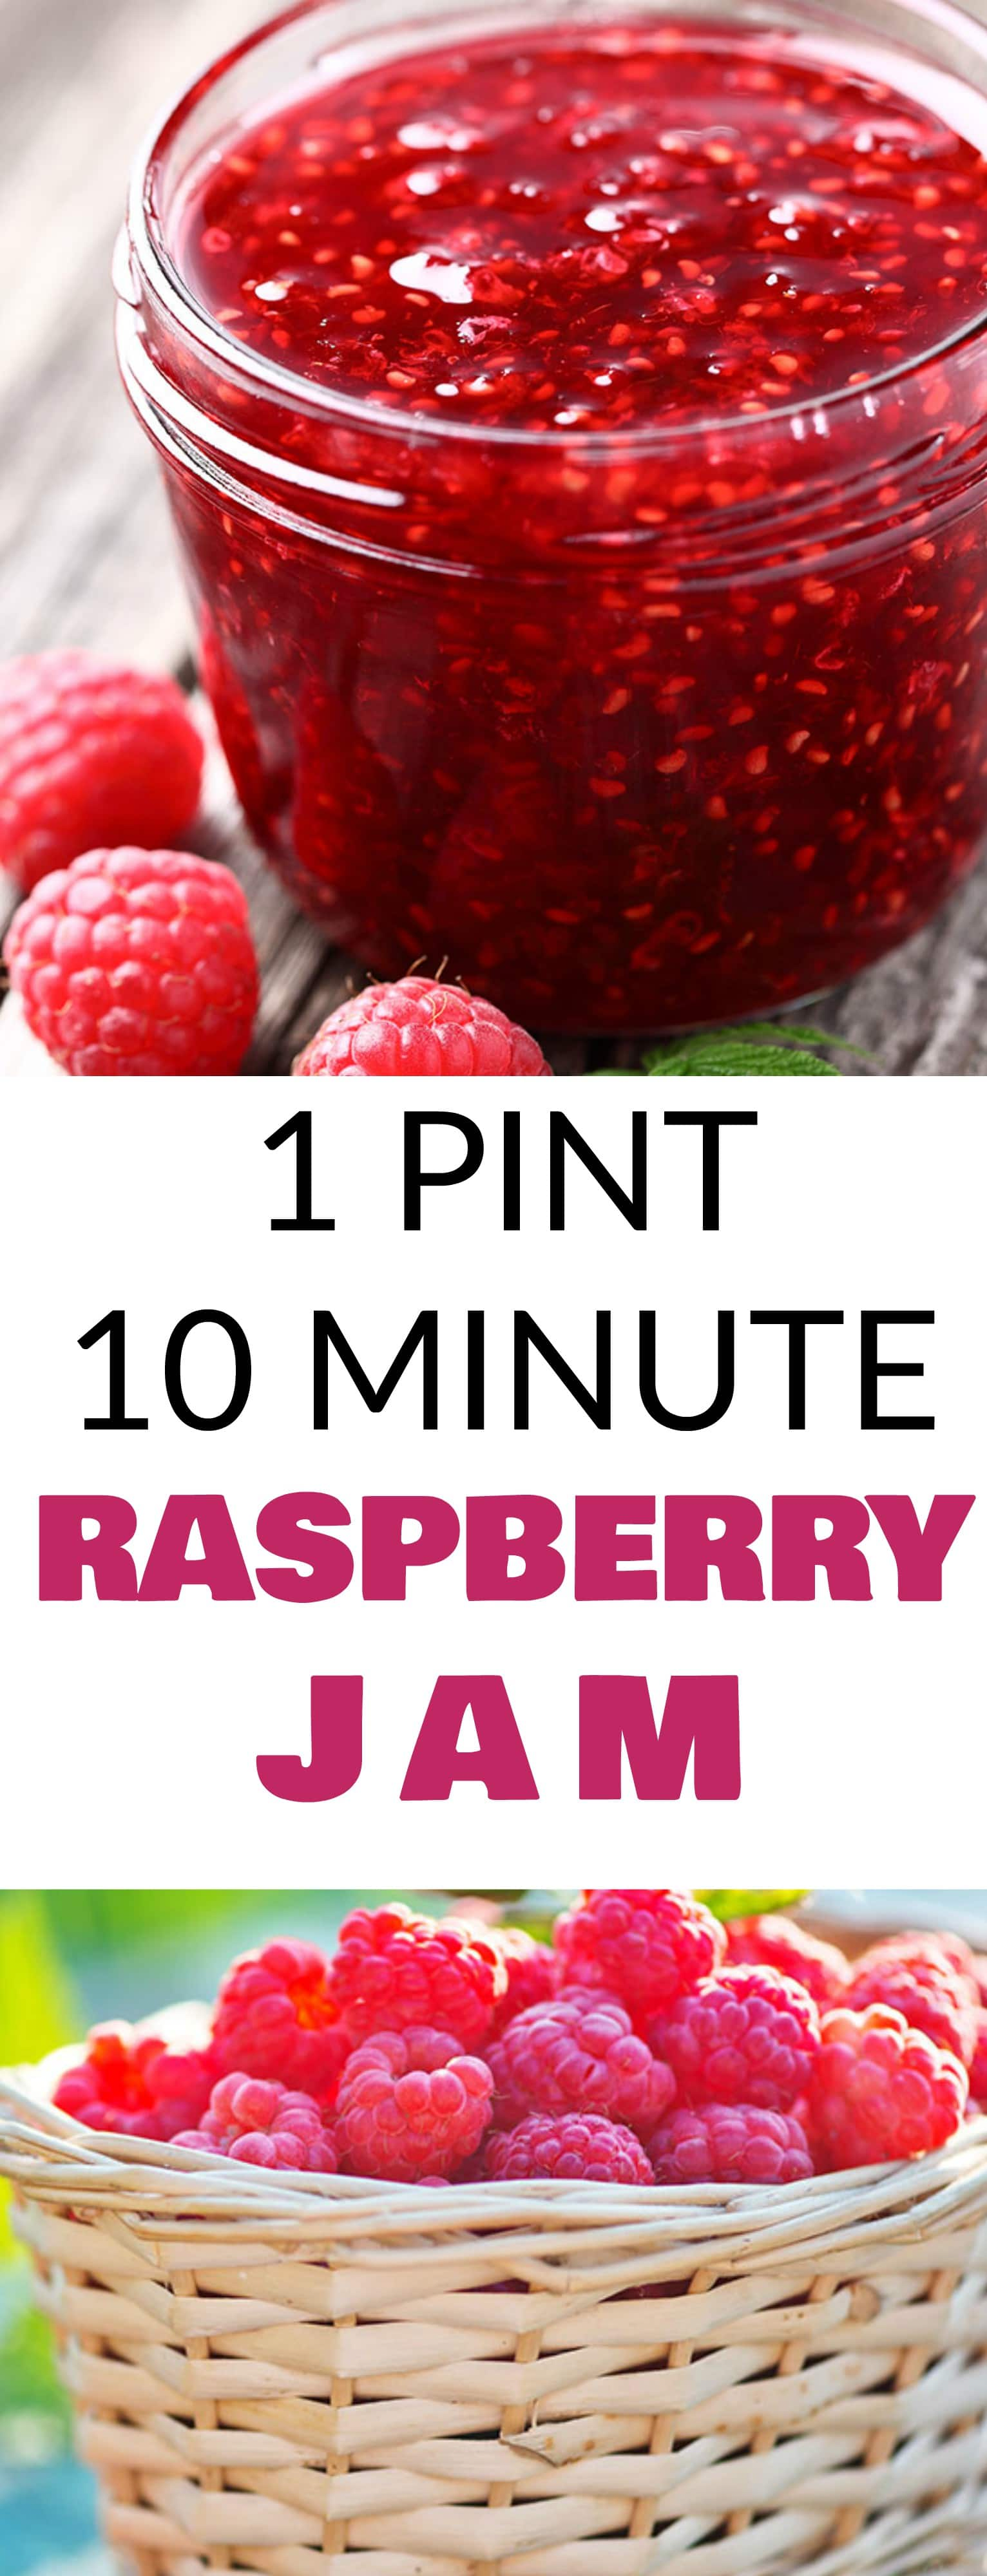 EASY 1 PINT 10 MINUTE Raspberry Jam! This simple recipe uses 1 pint of fresh raspberries, honey and lemon juice to make delicious jam! This homemade jam is healthy and requires no pectin and no sugar! I always make 2 jars - one to store in the refrigerator and one to store in the freezer!